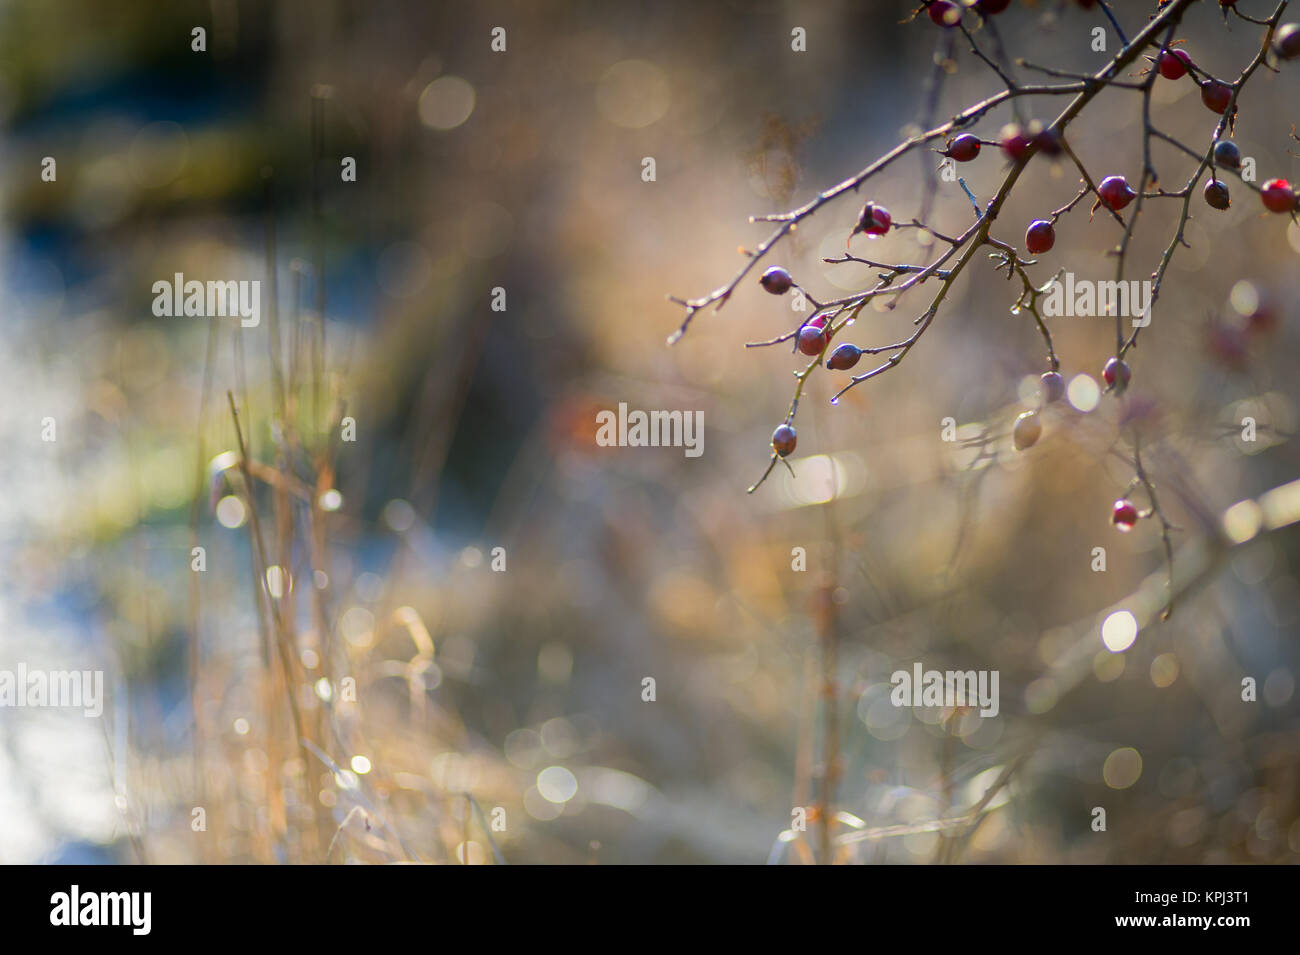 The sun warms up the rose hips after a cold winter night. - Stock Image